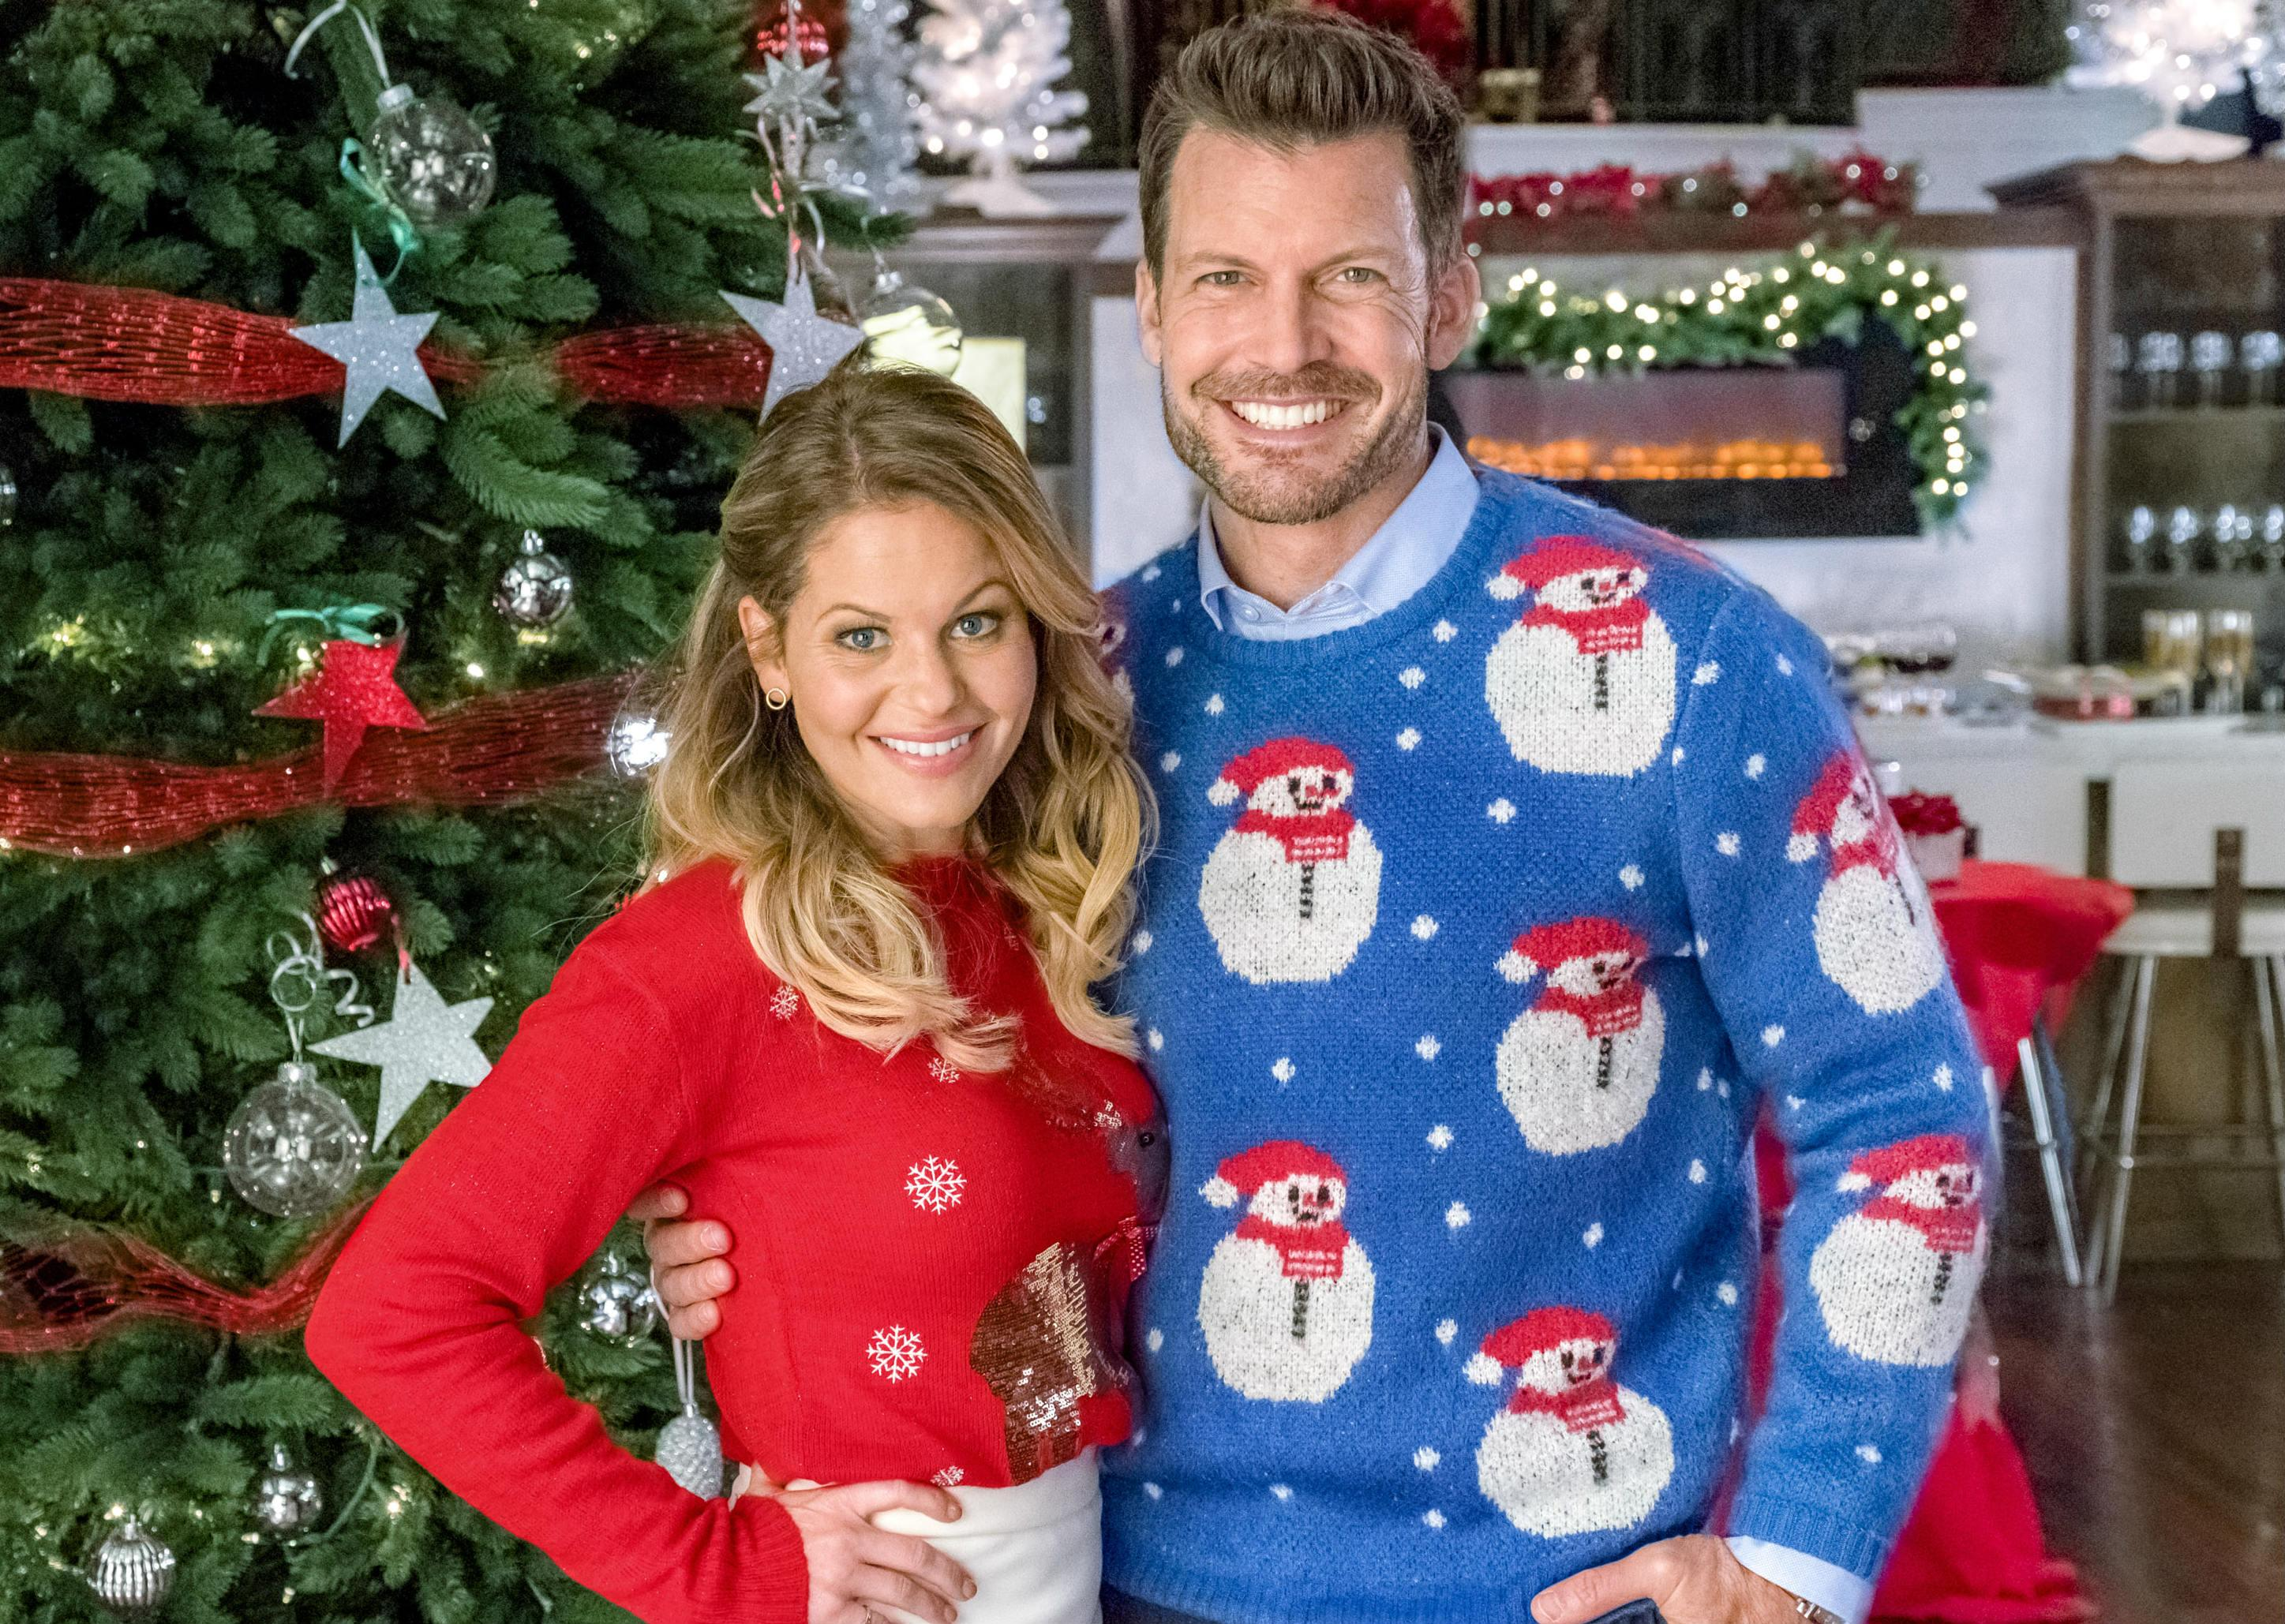 Hallmark Christmas In July 2018 Movies Schedule: Keepsake Week, Gold ...